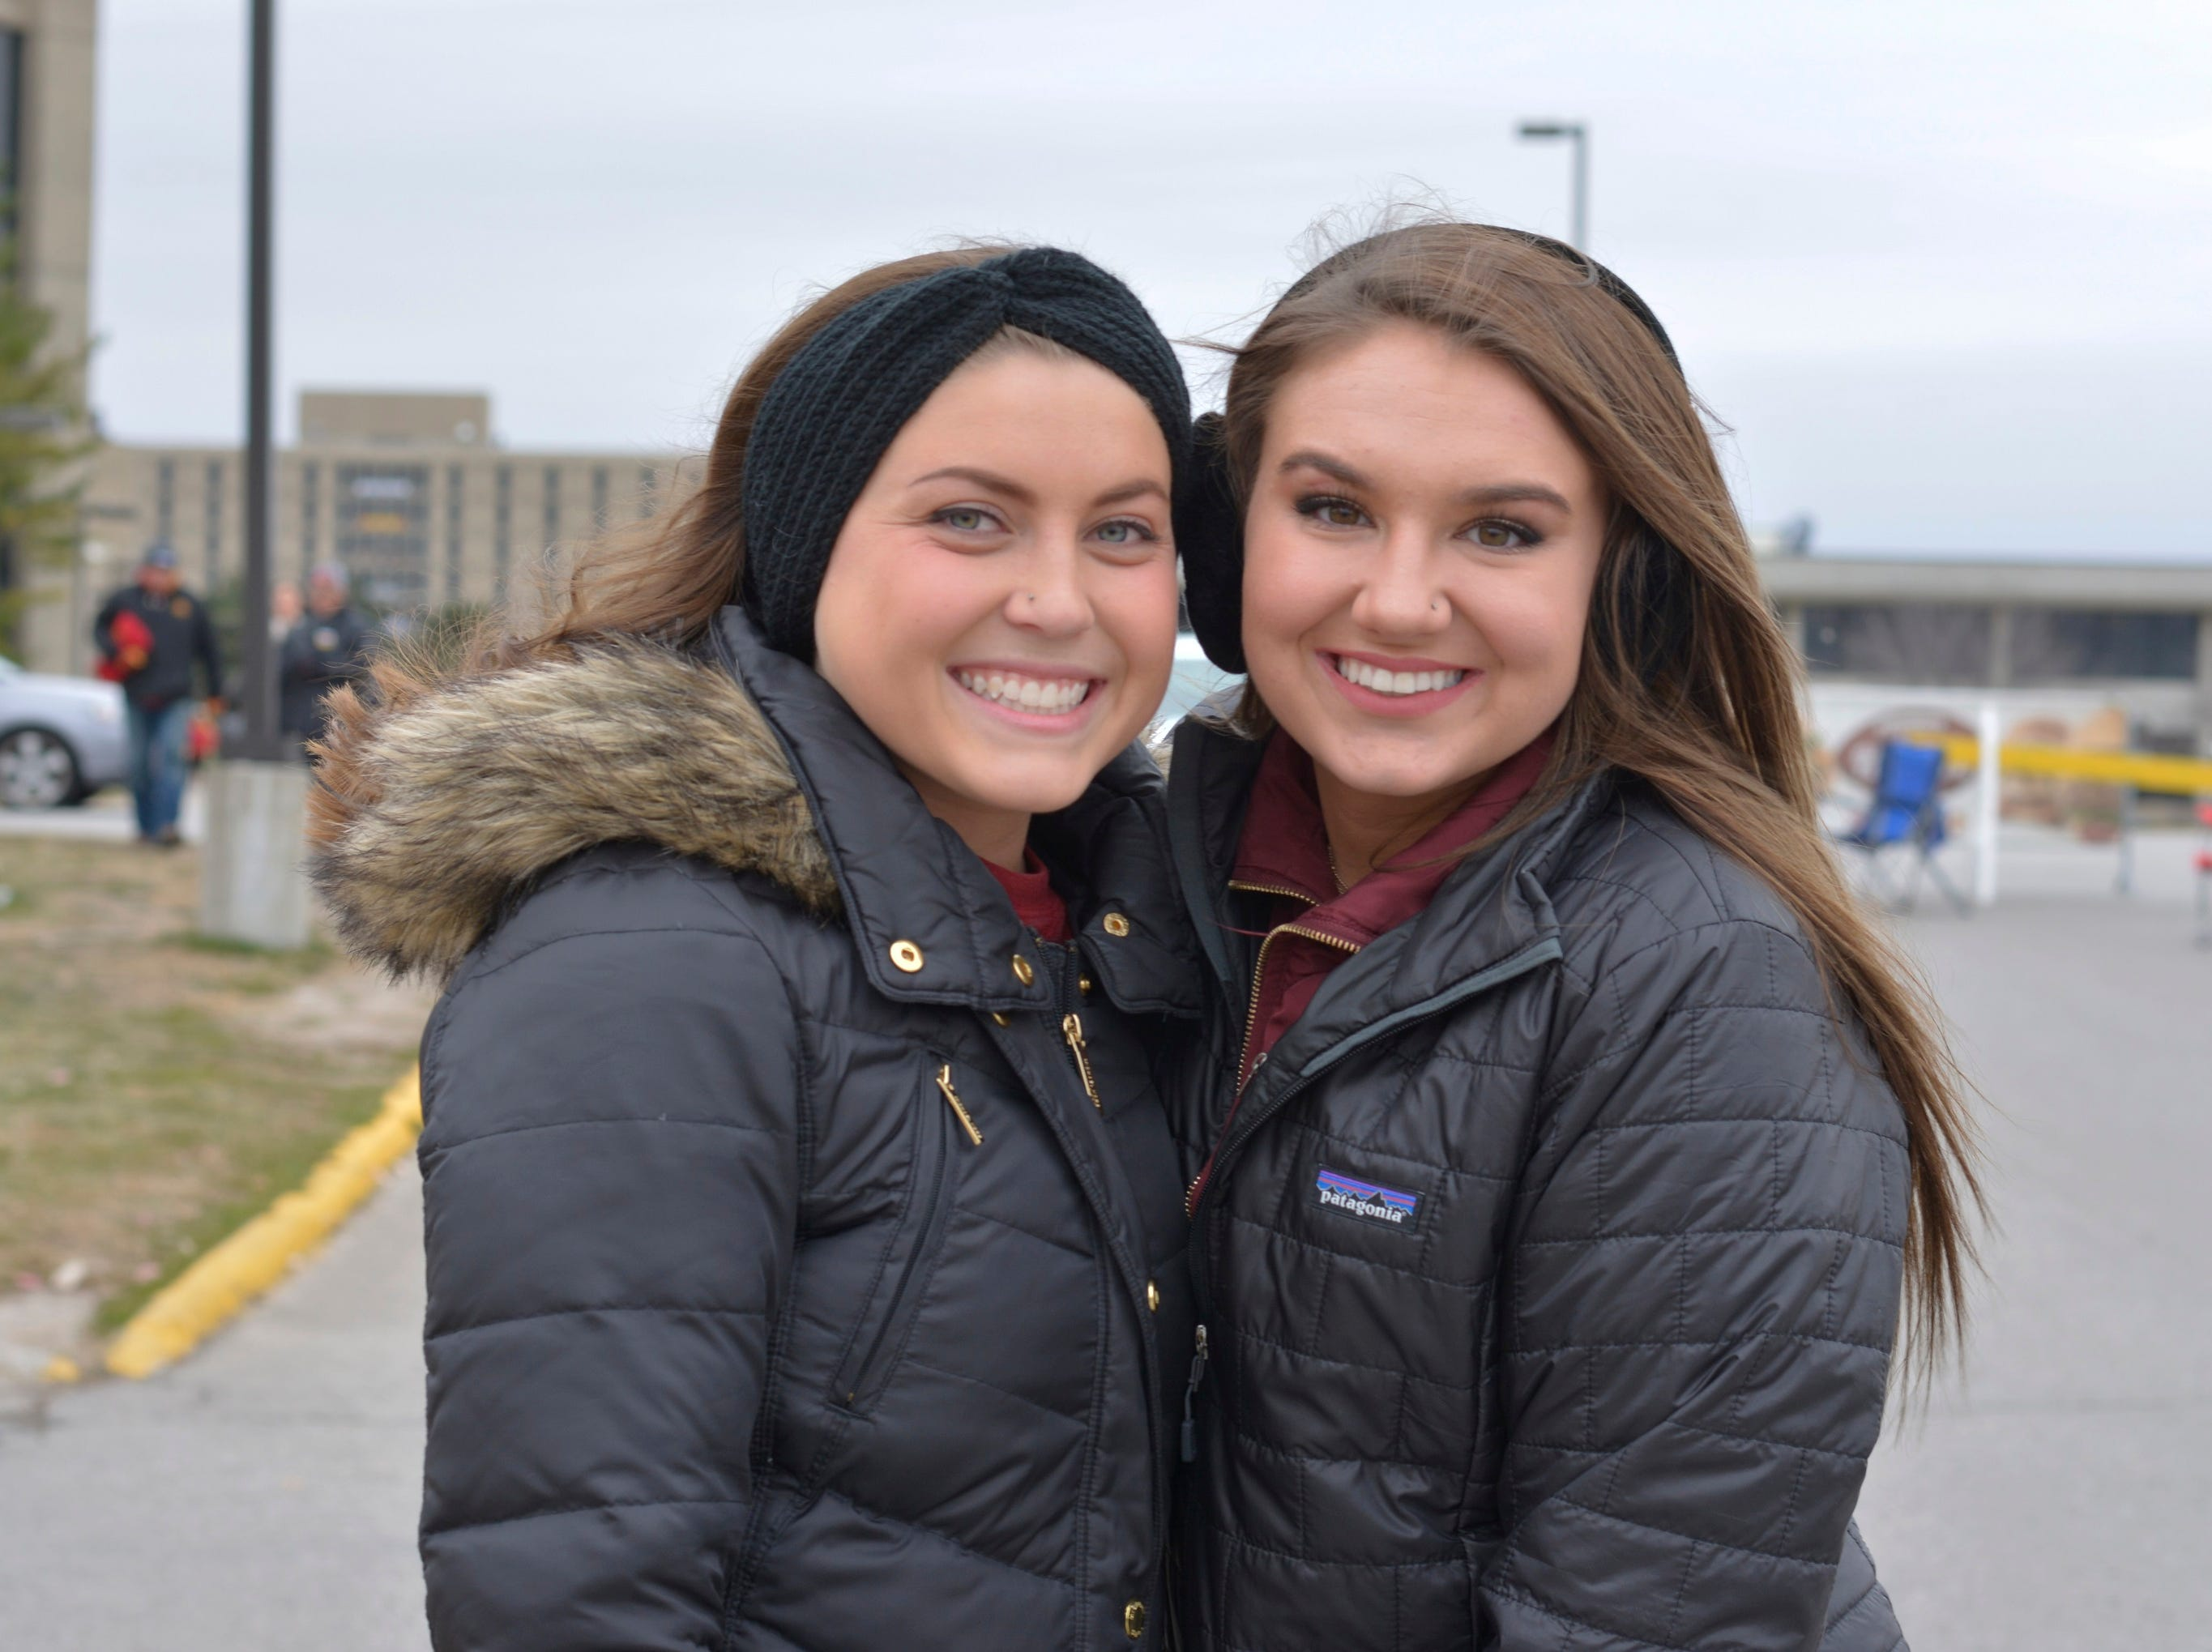 Nicole Rupprecht (left) and Aubree Sanders (right) before the Iowa State University football game against Baylor in Ames on Nov. 10.